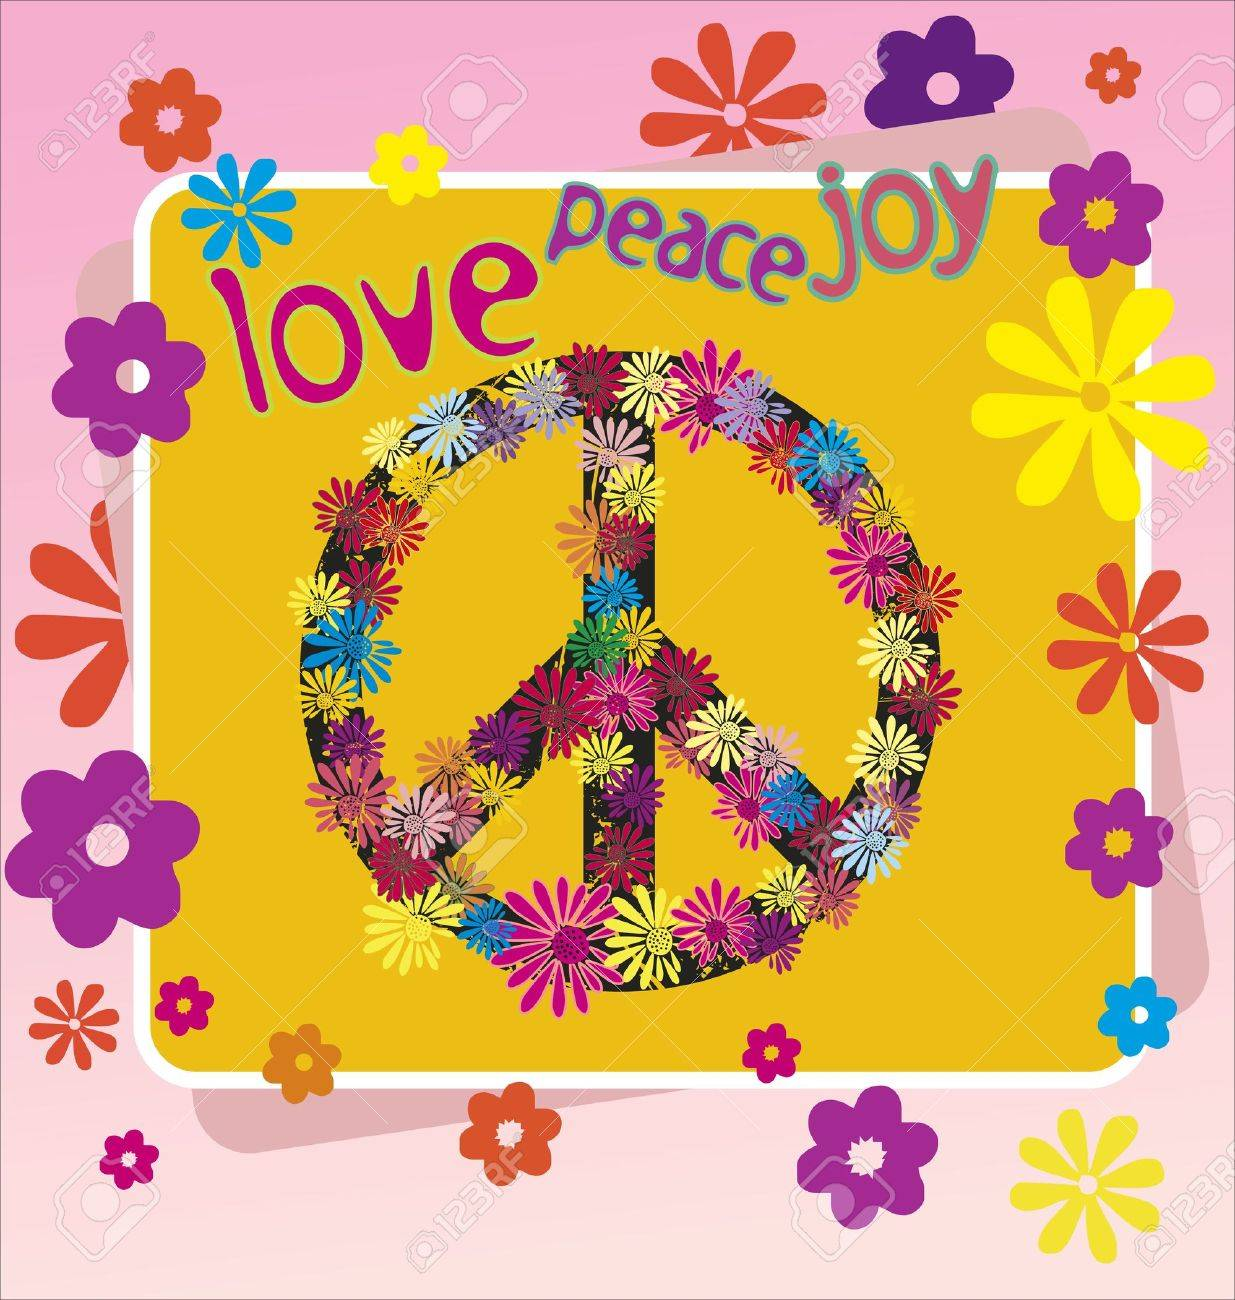 A Illustration Of A Peace Symbol And Flowers Royalty Free Cliparts